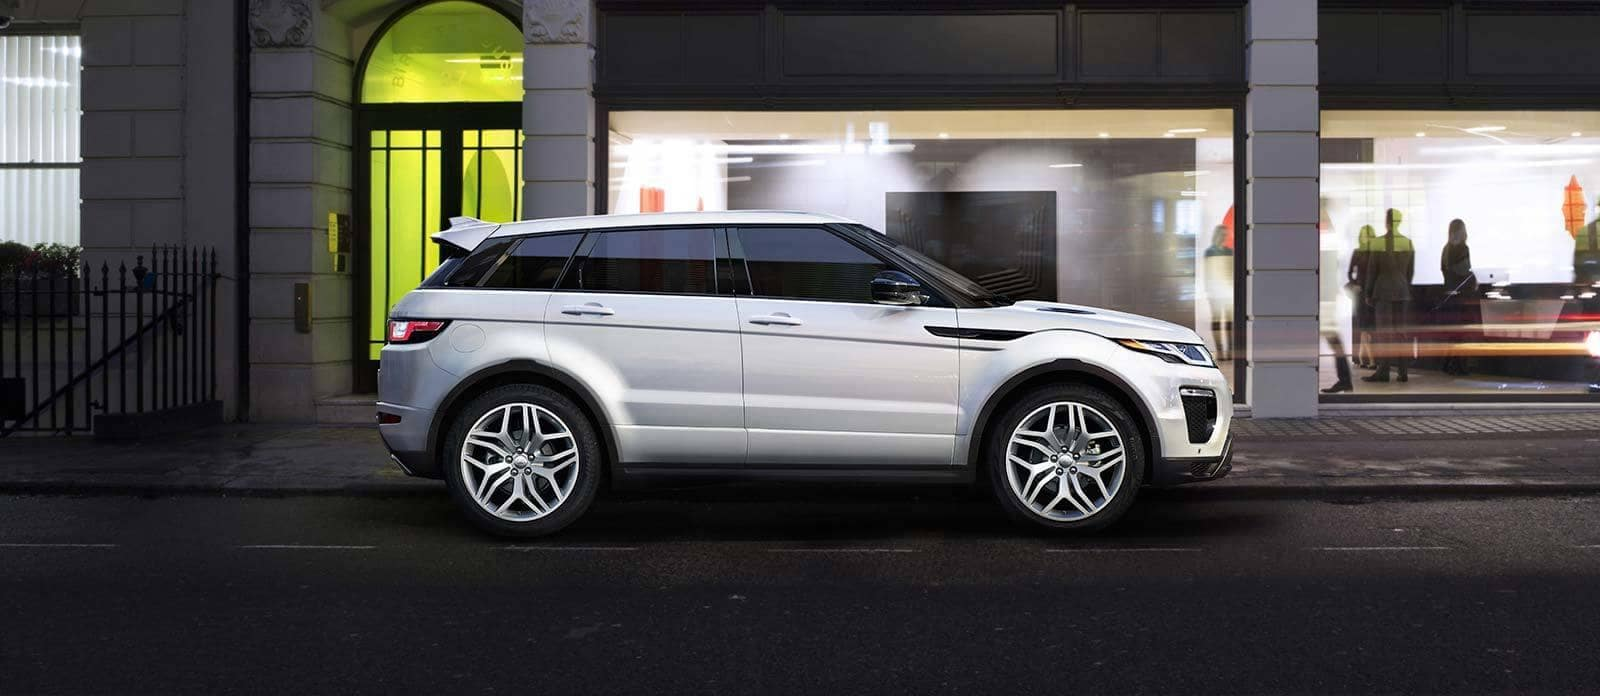 lease deals on range rover evoque lamoureph blog. Black Bedroom Furniture Sets. Home Design Ideas